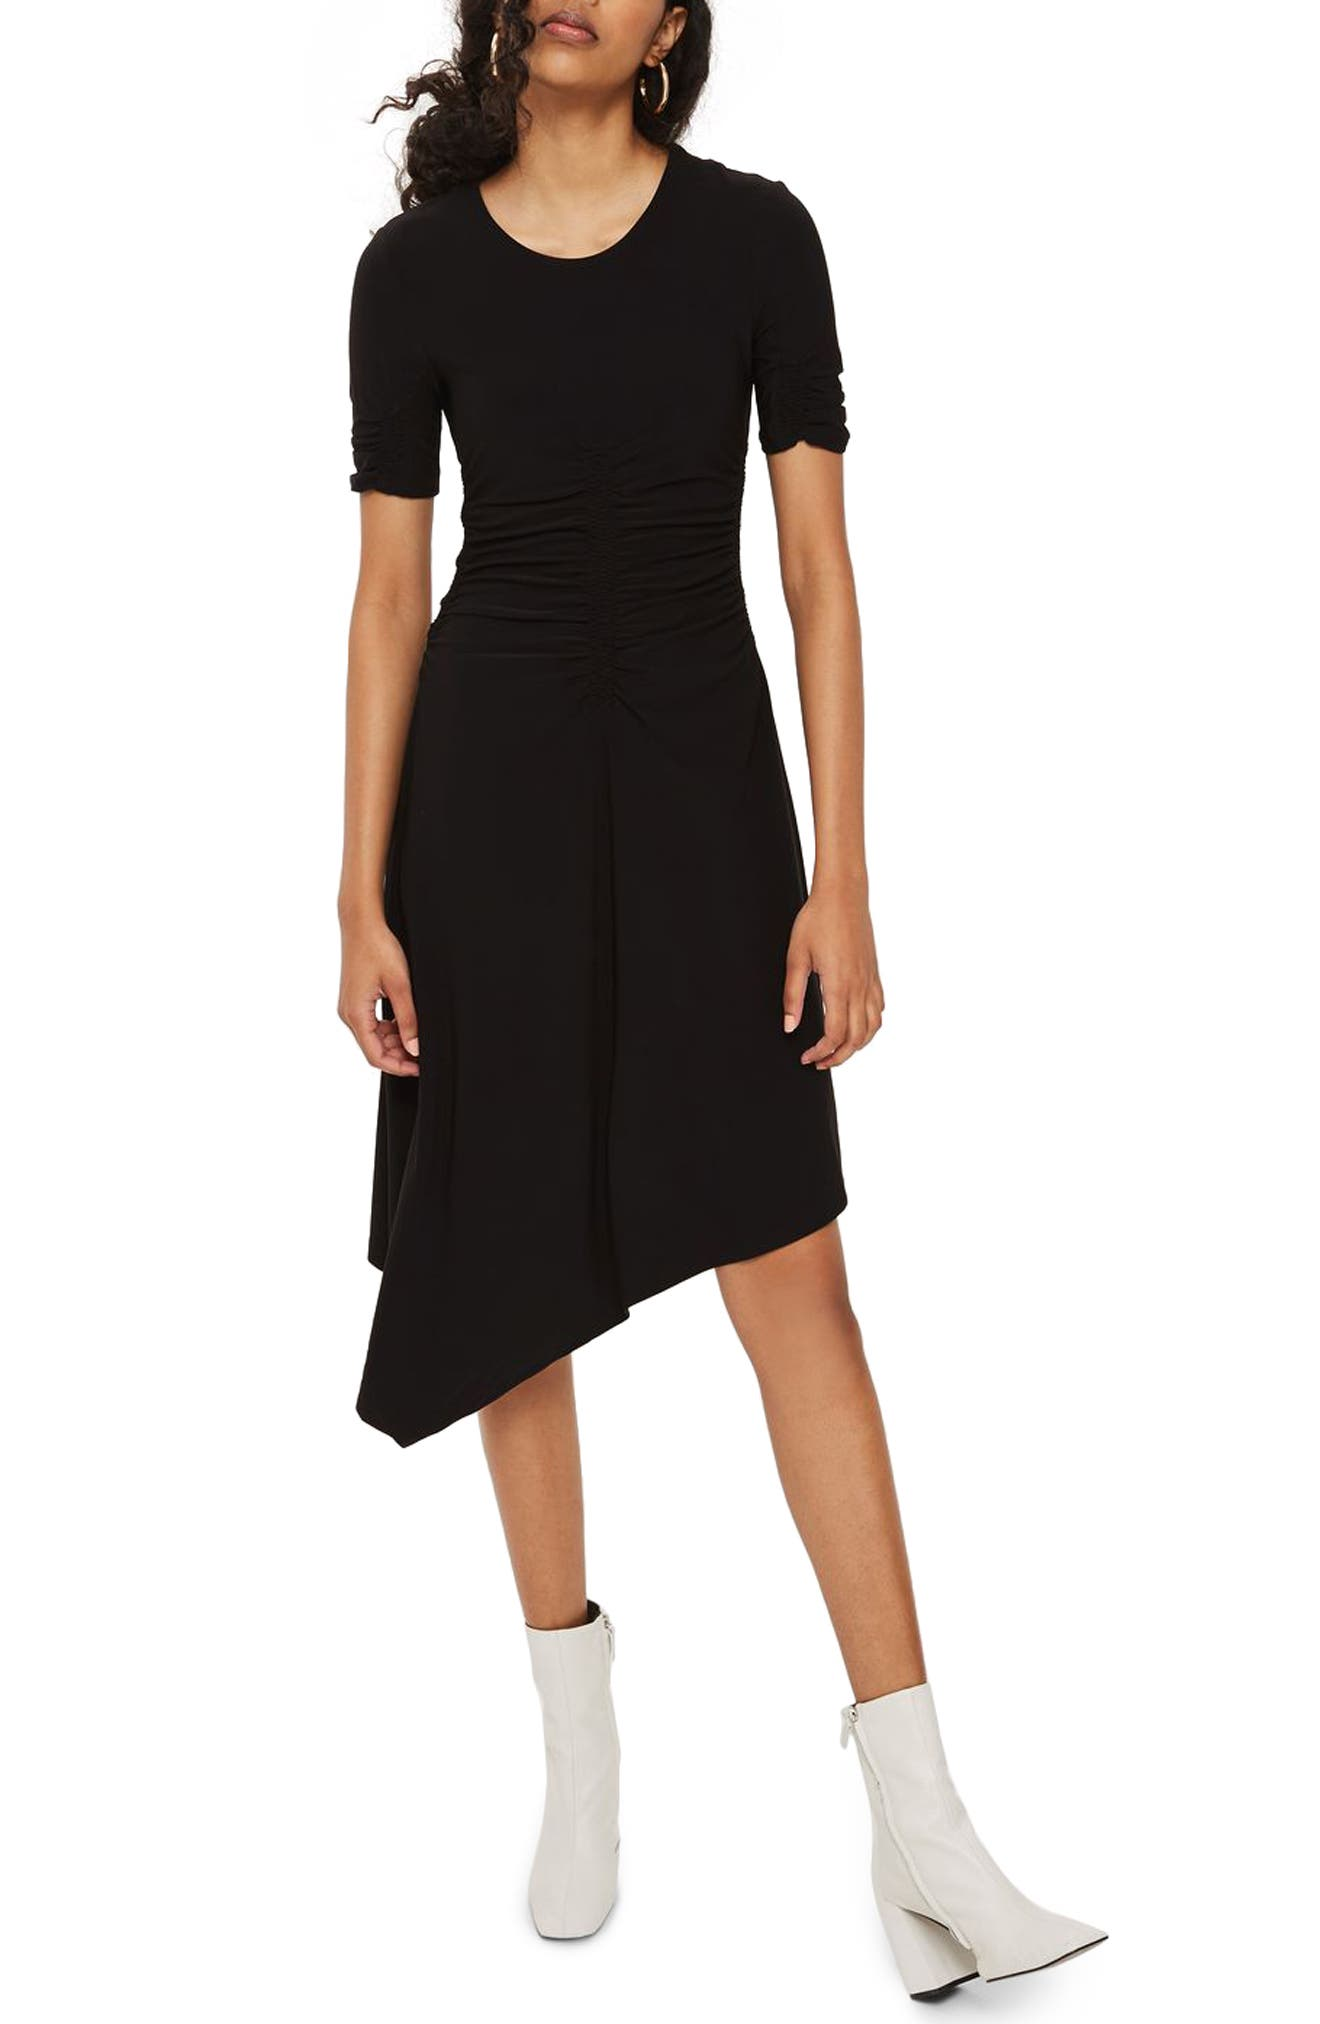 Topshop Ruched Asymmetrical Dress